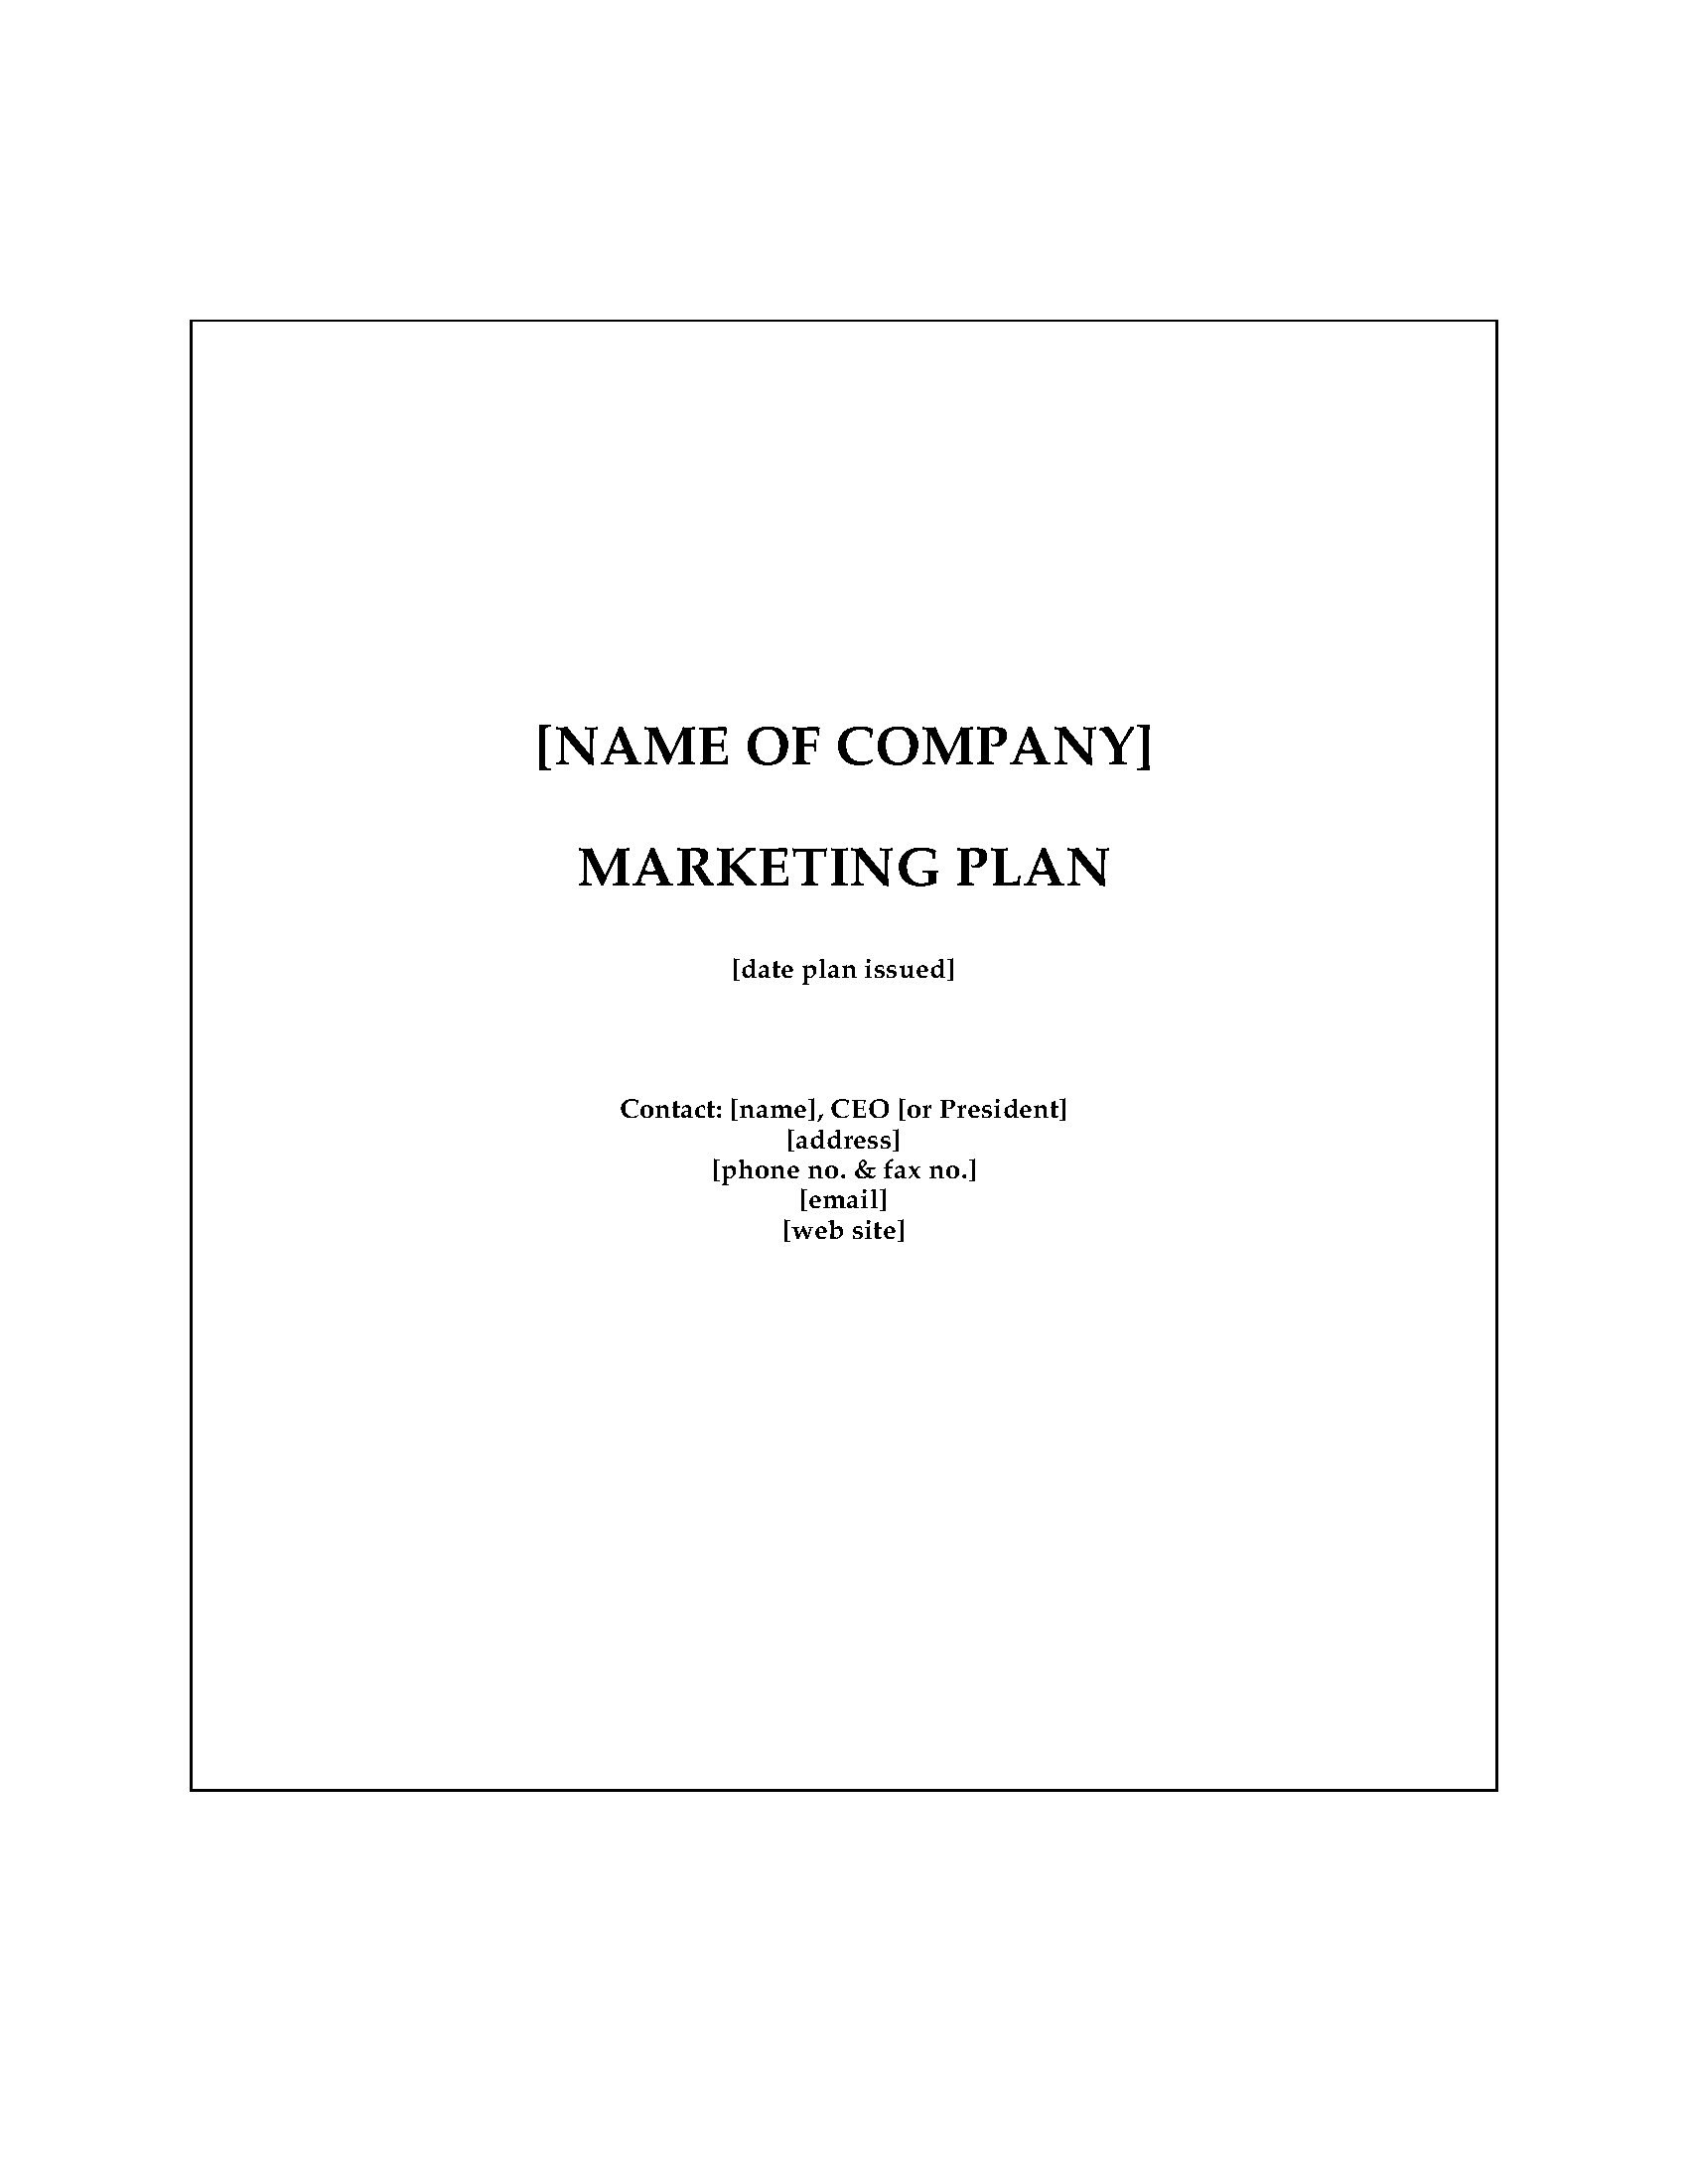 Accounting Firm Business Plan Tax And Template Cpa Sample Iness With Accounting Firm Business Plan Template